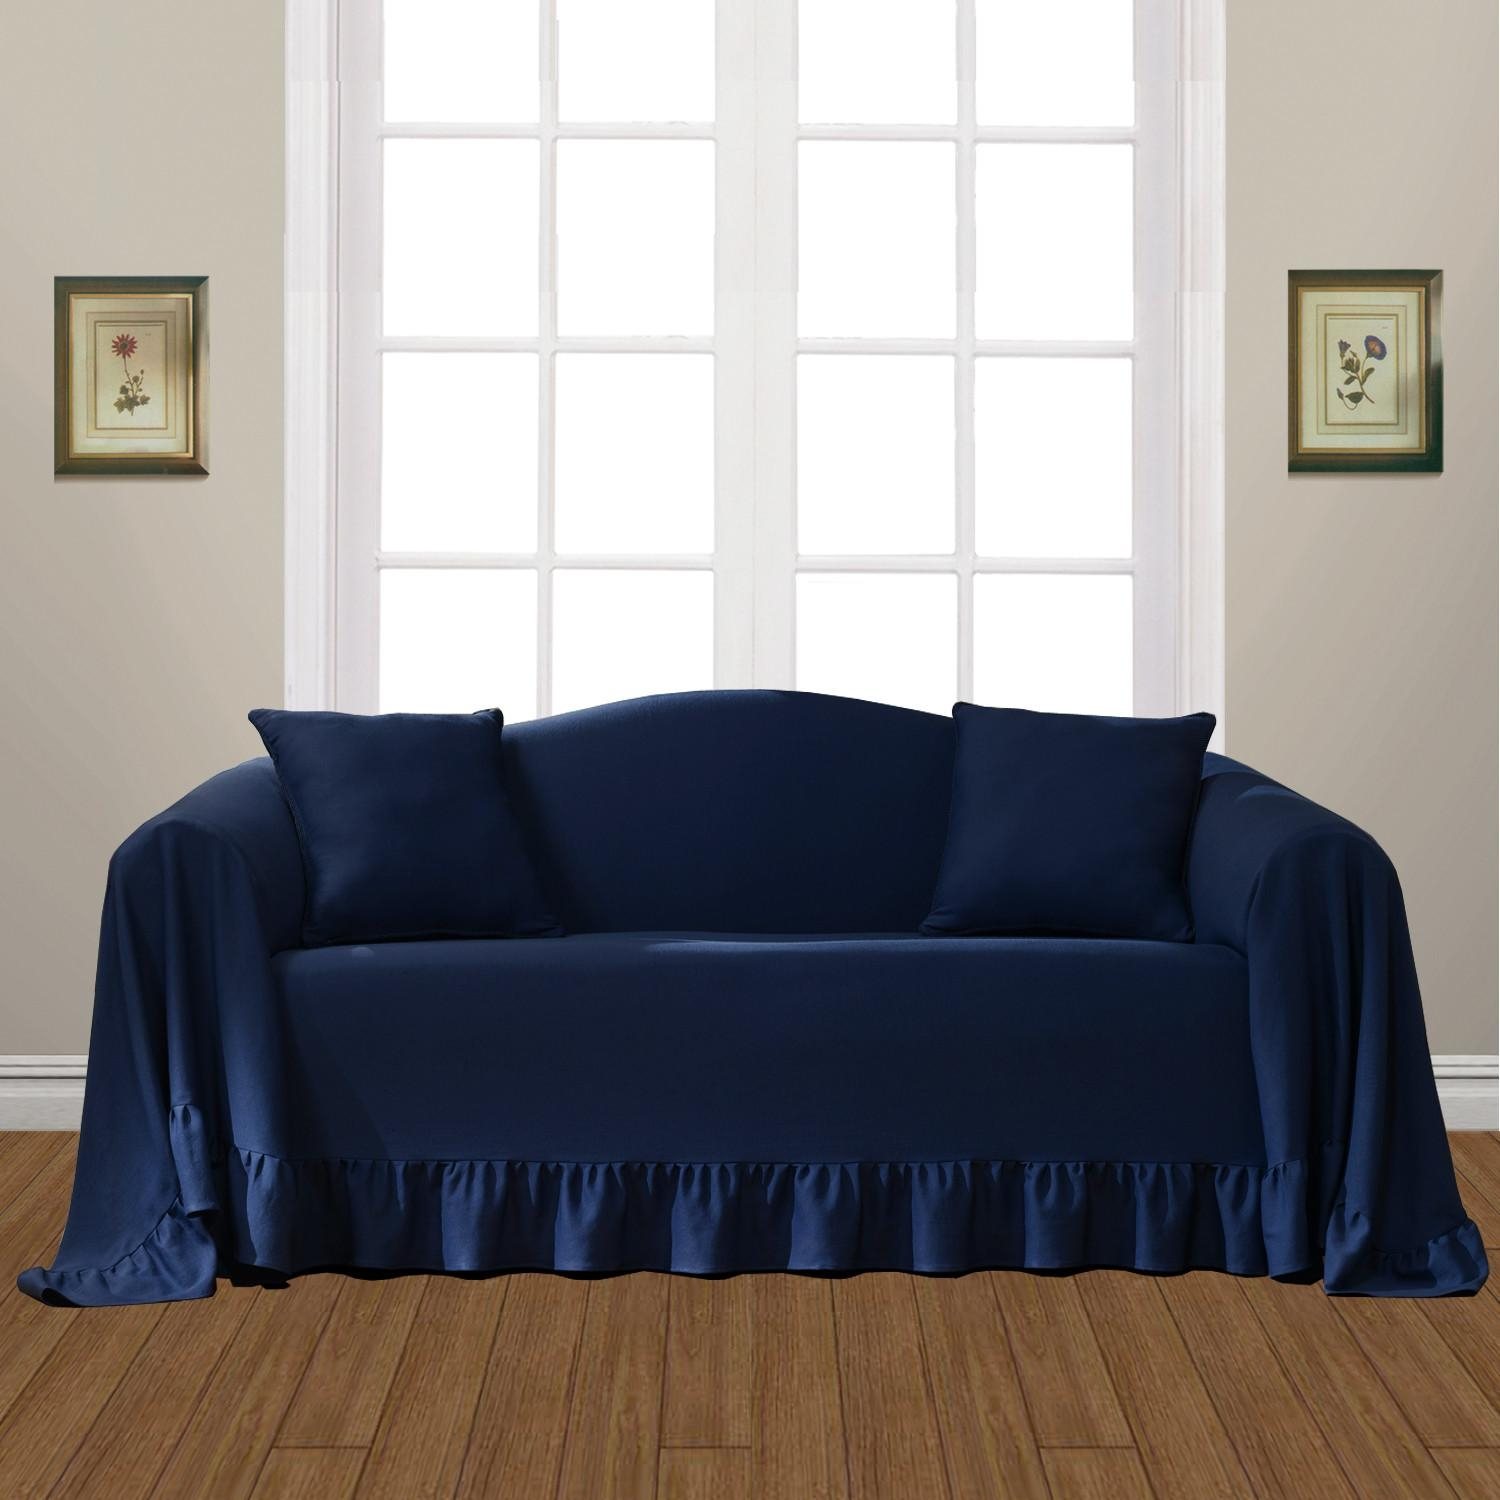 Featured Image of Blue Slipcover Sofas